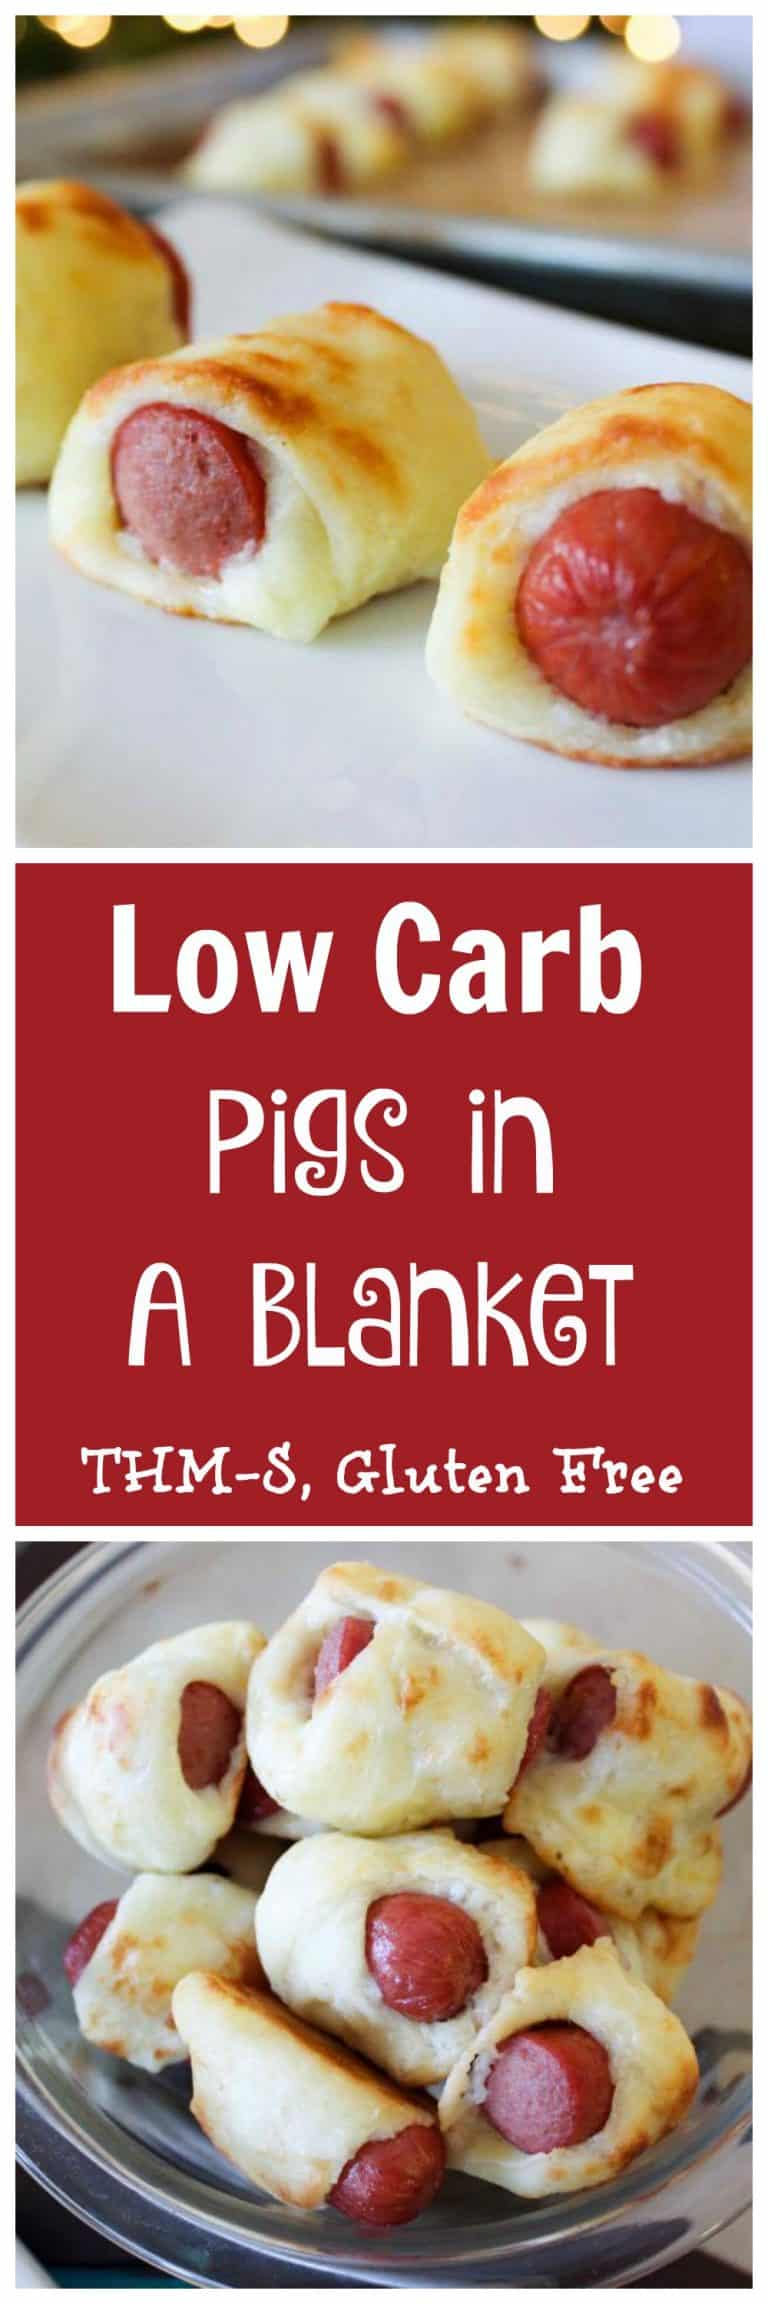 Low Carb Pigs In A Blanket Thm S My Montana Kitchen